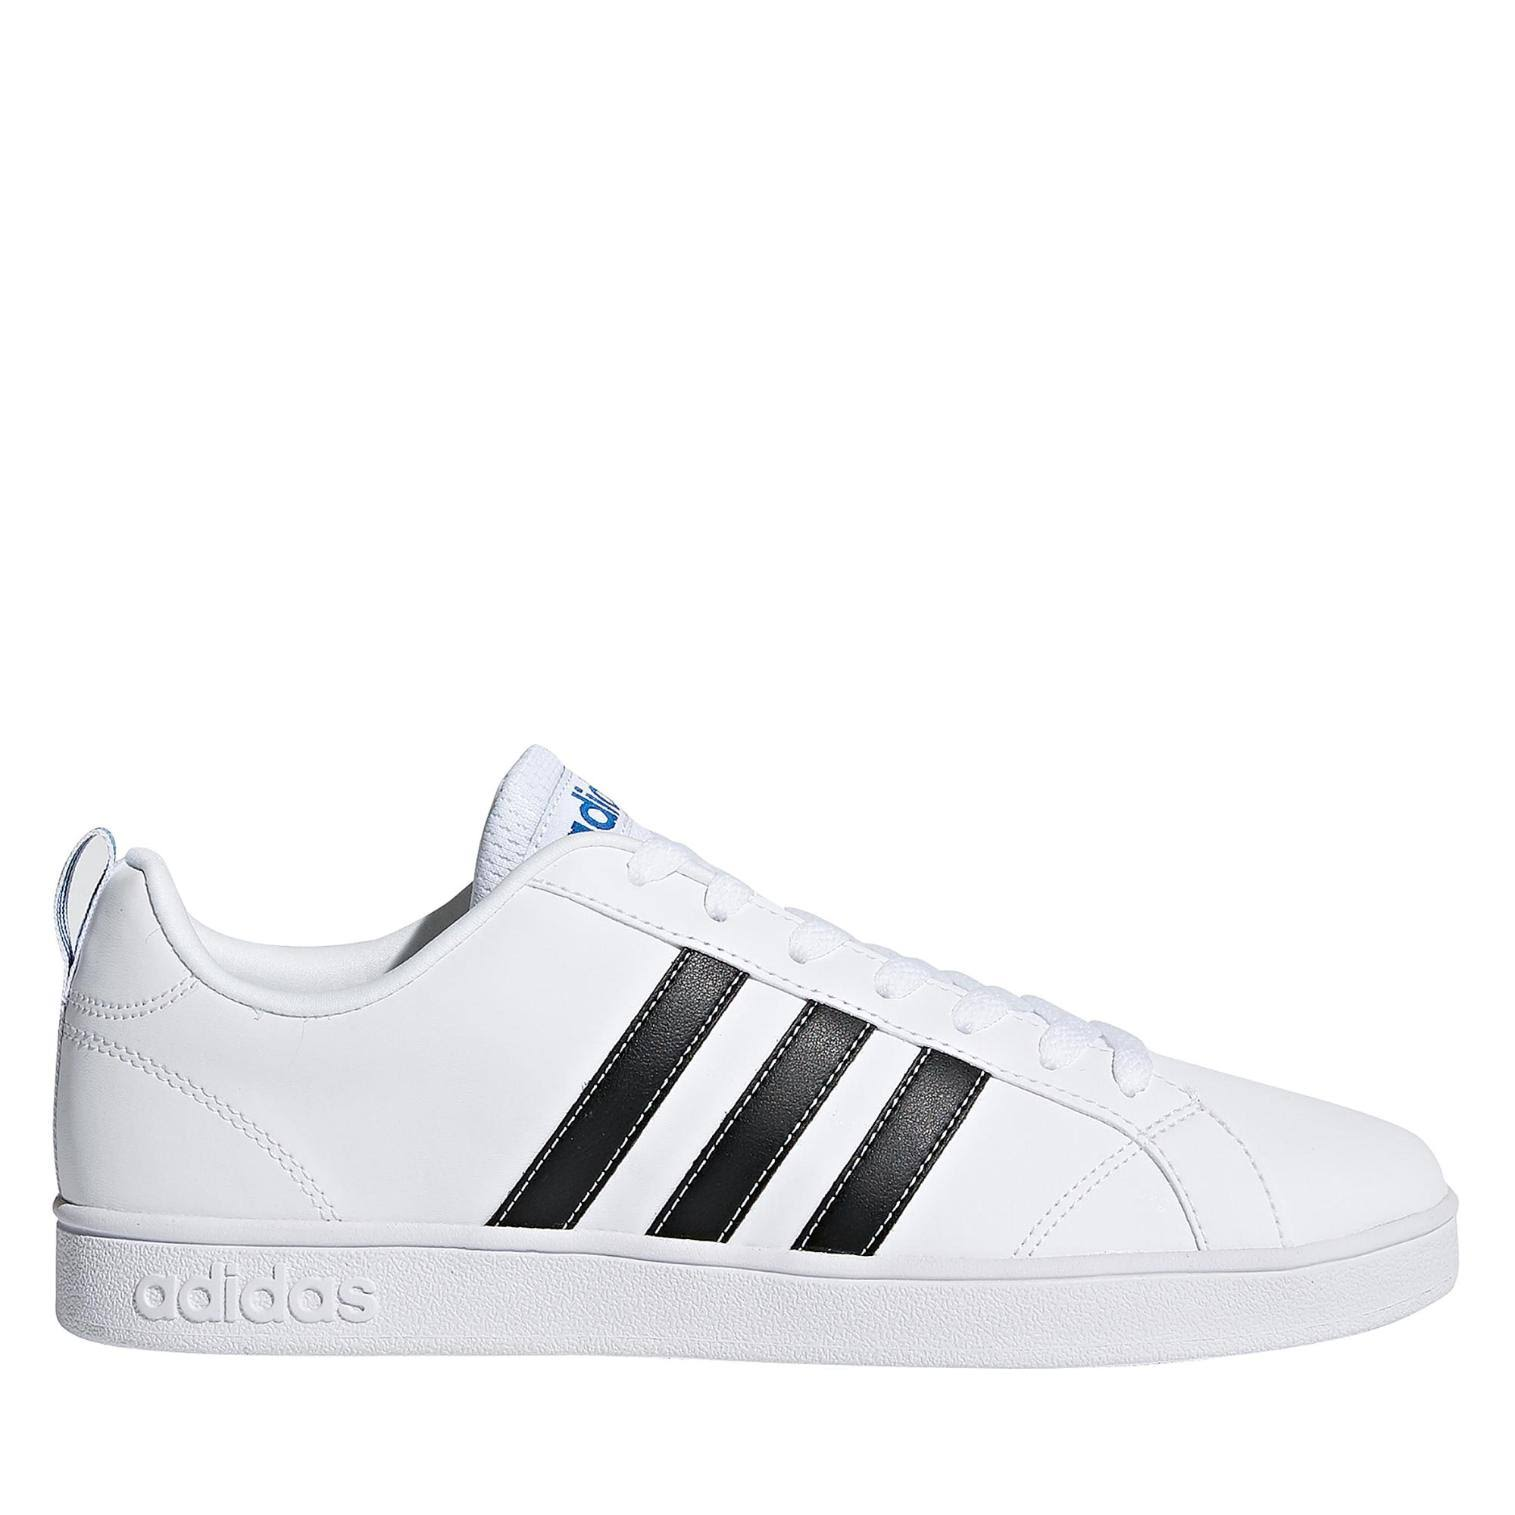 Vs Sneakers Low Advantage Vs White erdBQxoWC